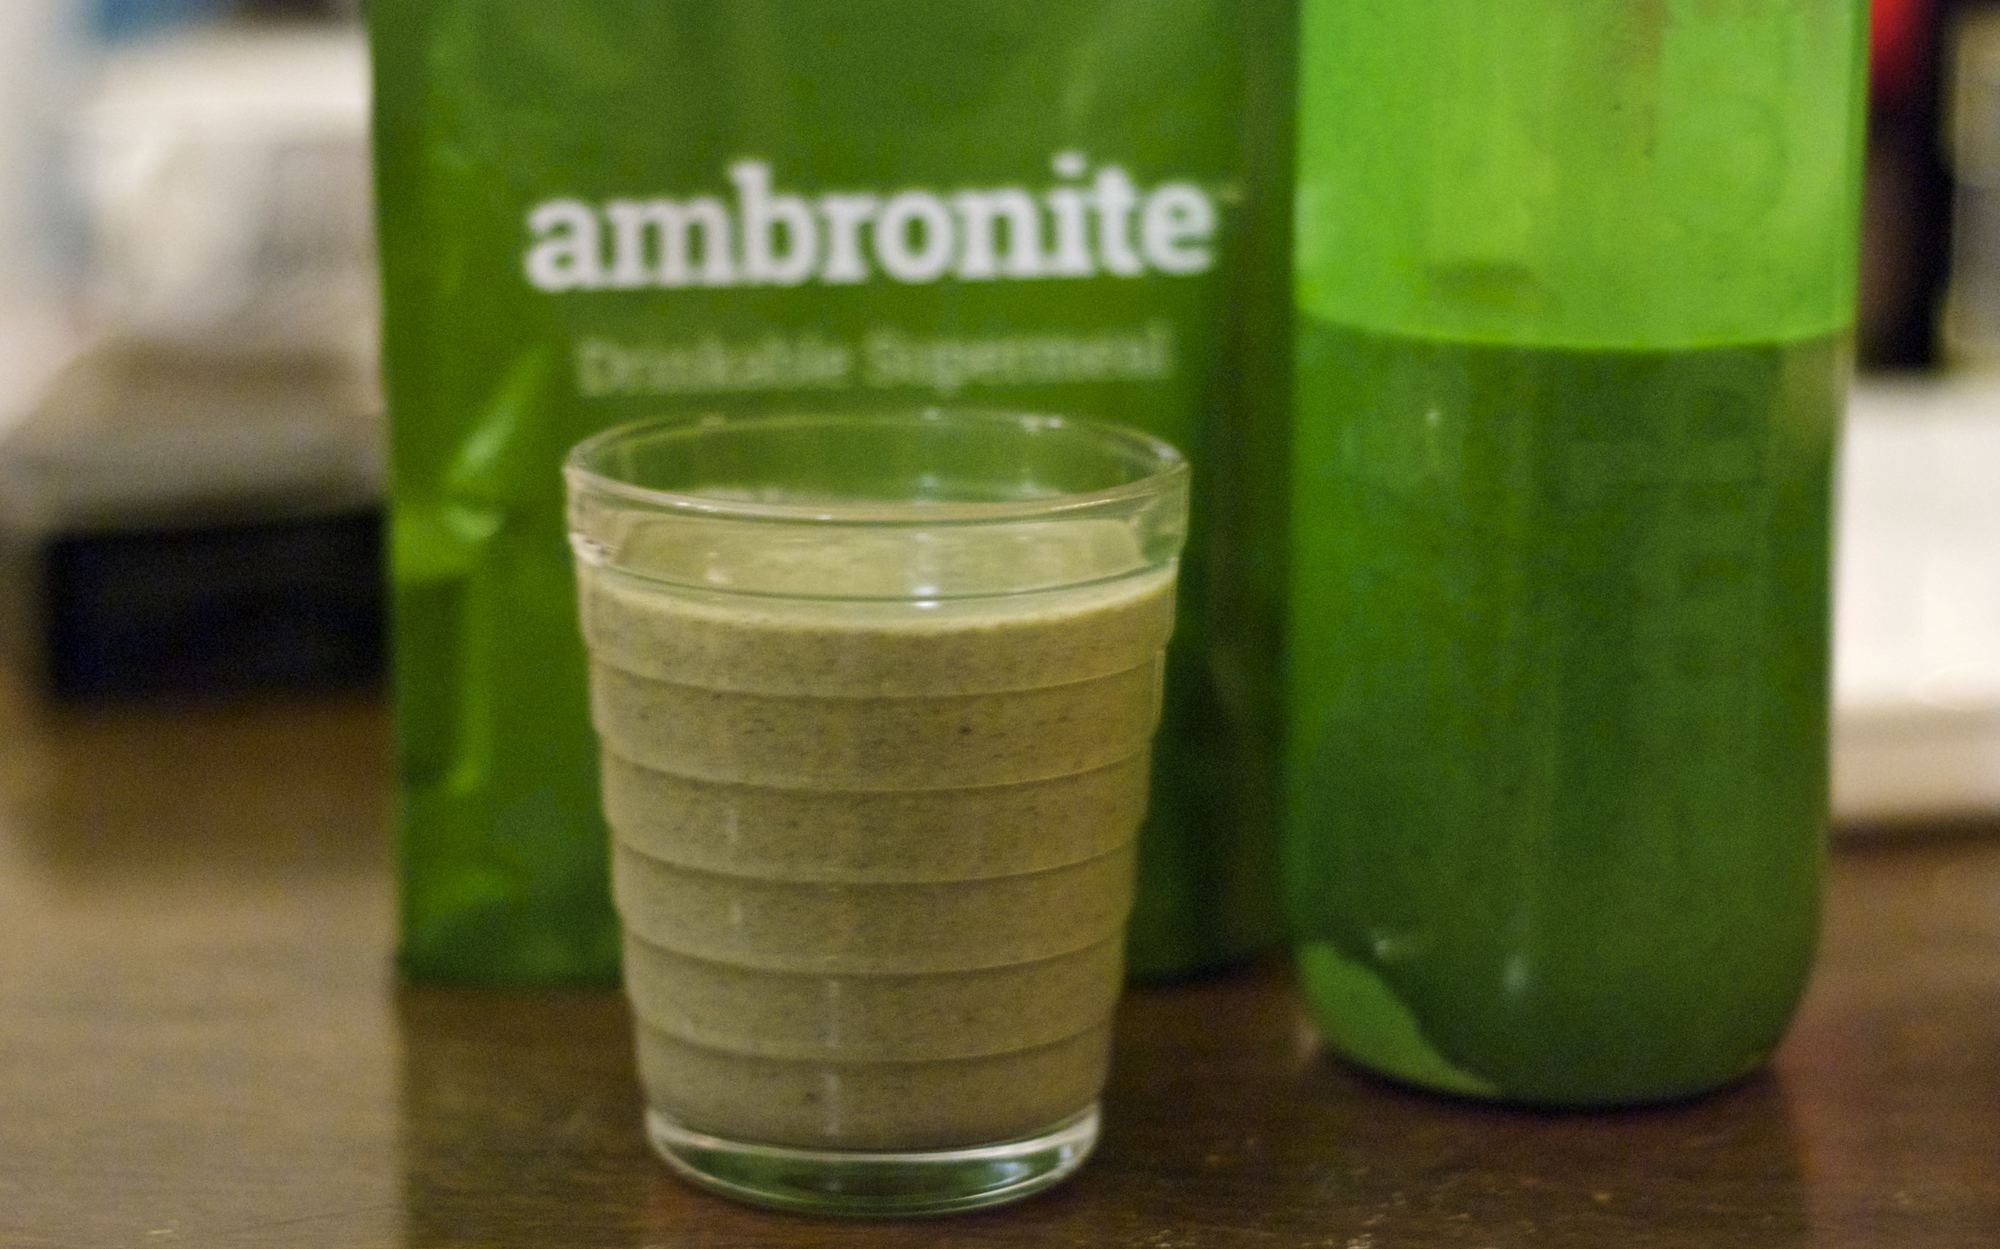 A glass of Ambronite